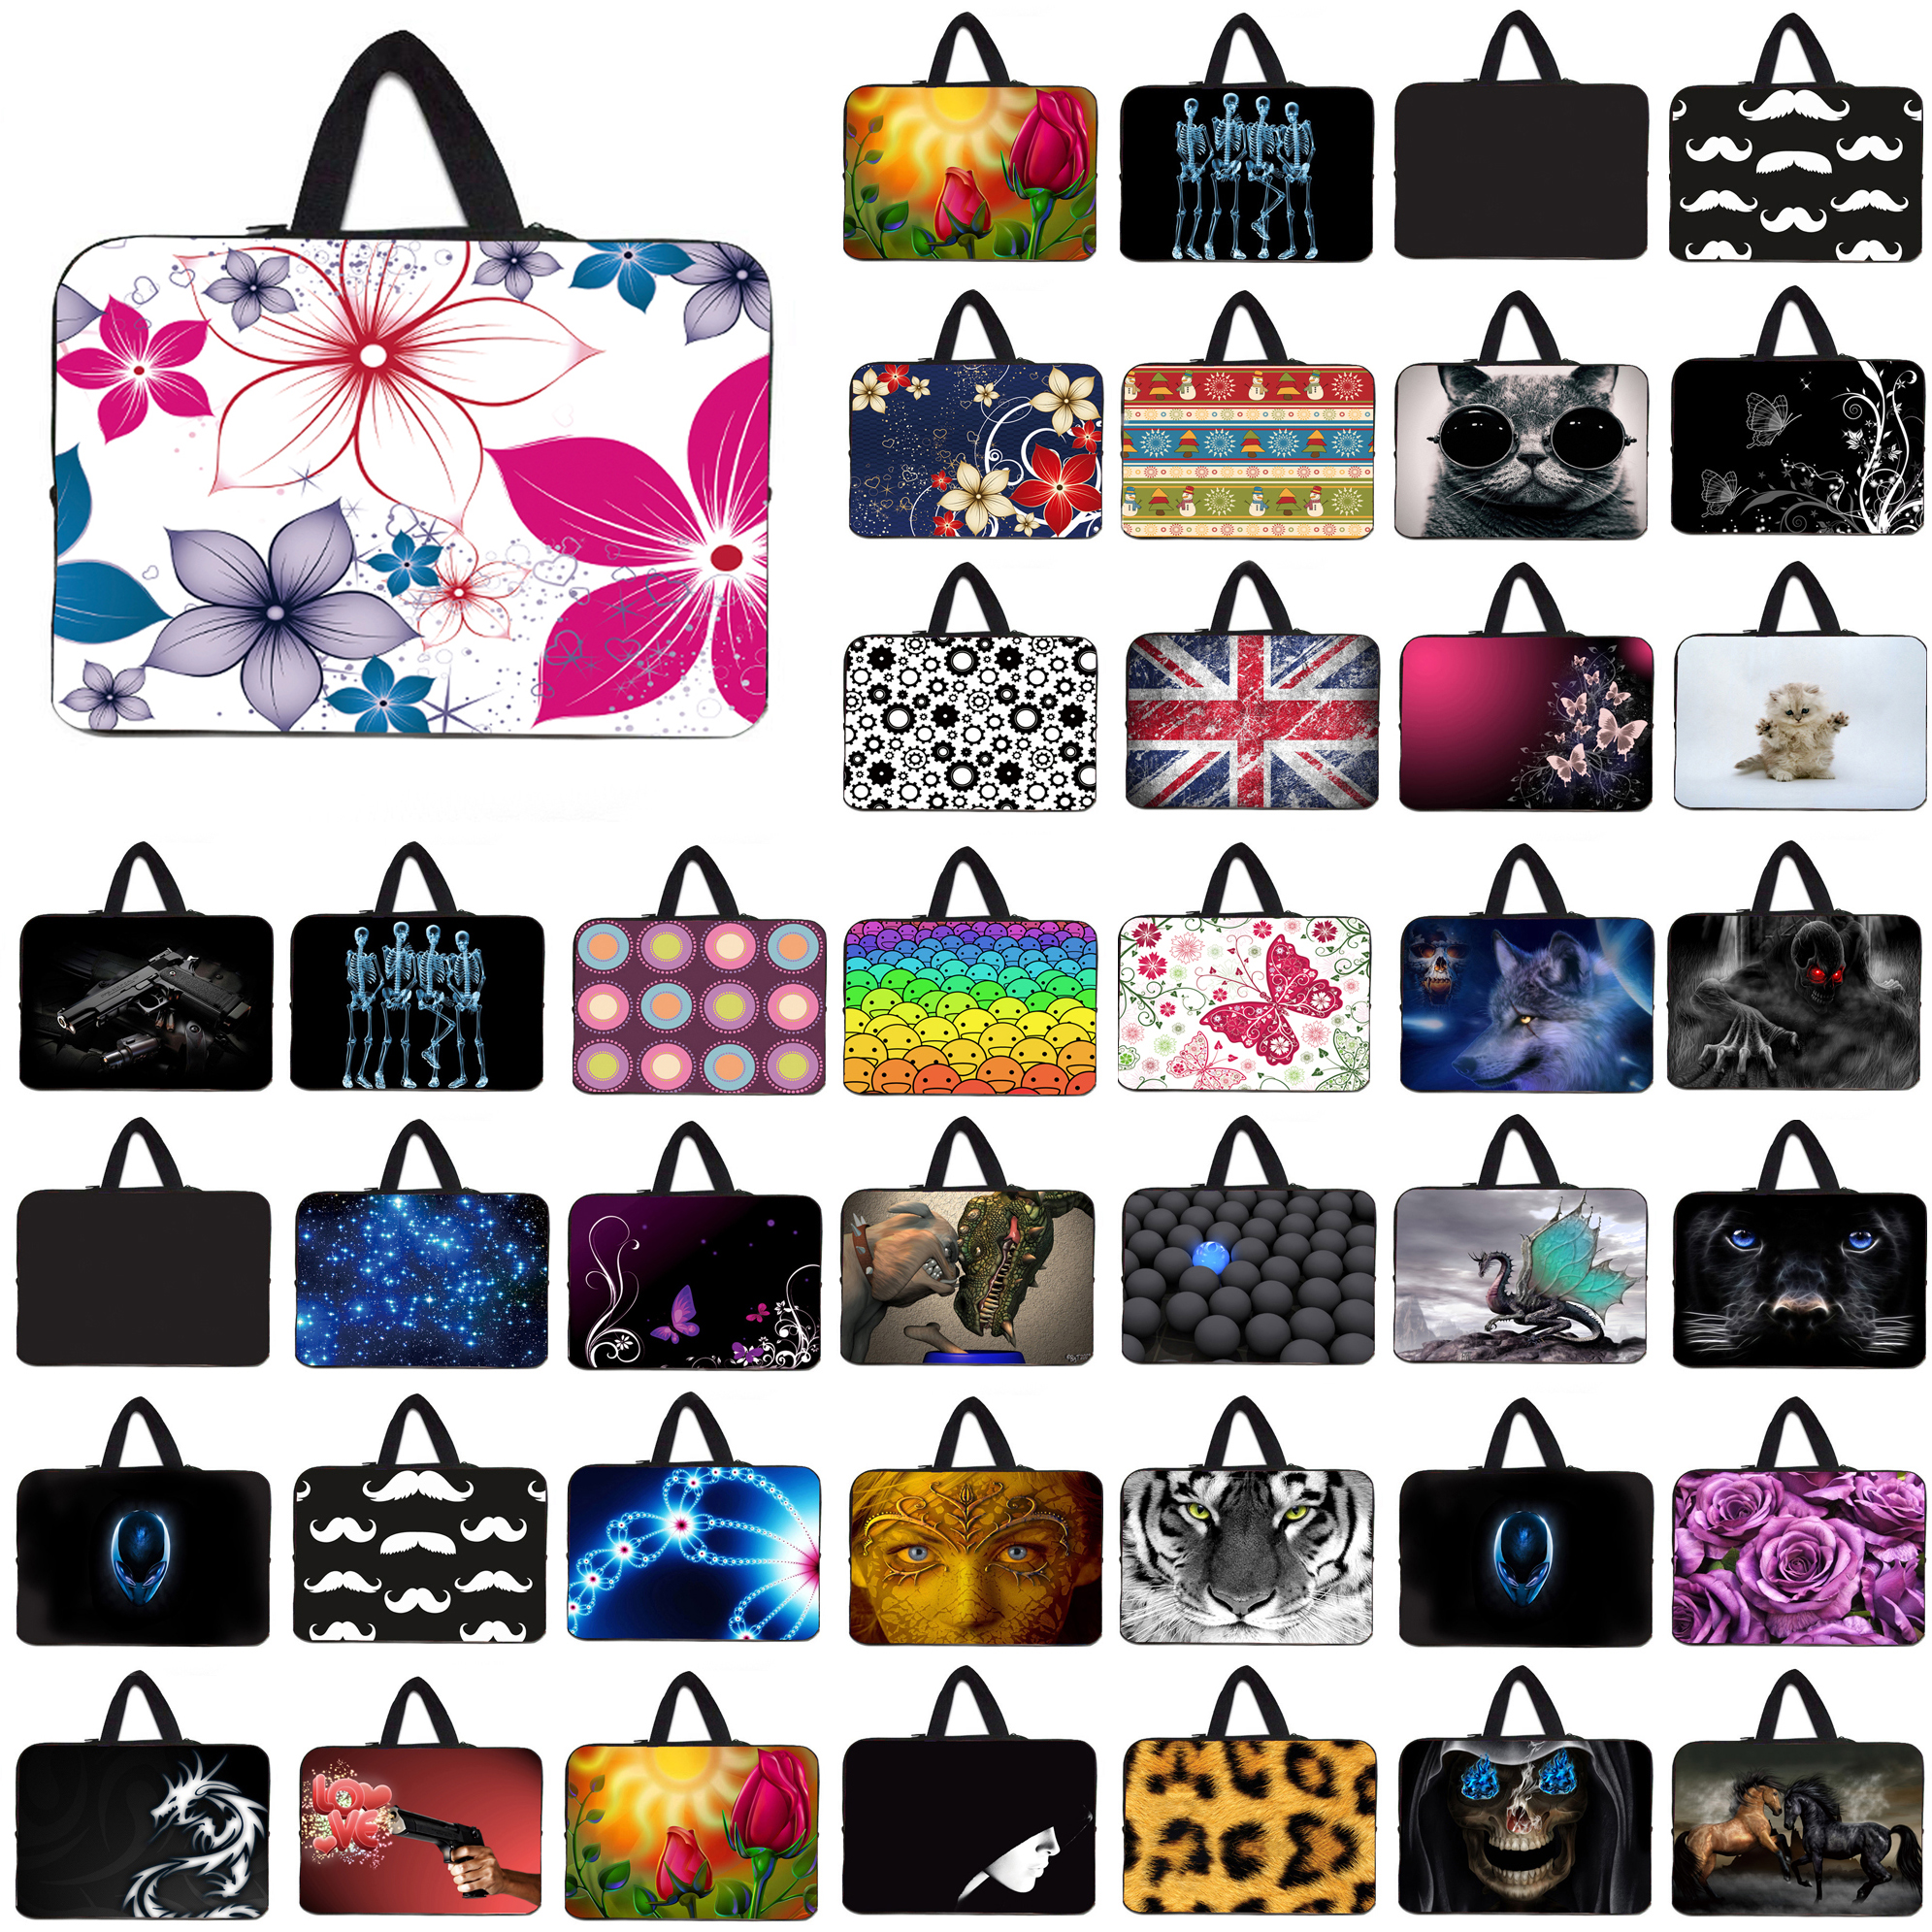 10 Tablets Laptop Liner Sleeve Case Bag For Apple iPad Macbook Chuwi Huawei Tablet 10.1 11.6 12 13 13.3 14 15.4 15.6 17 Netbook